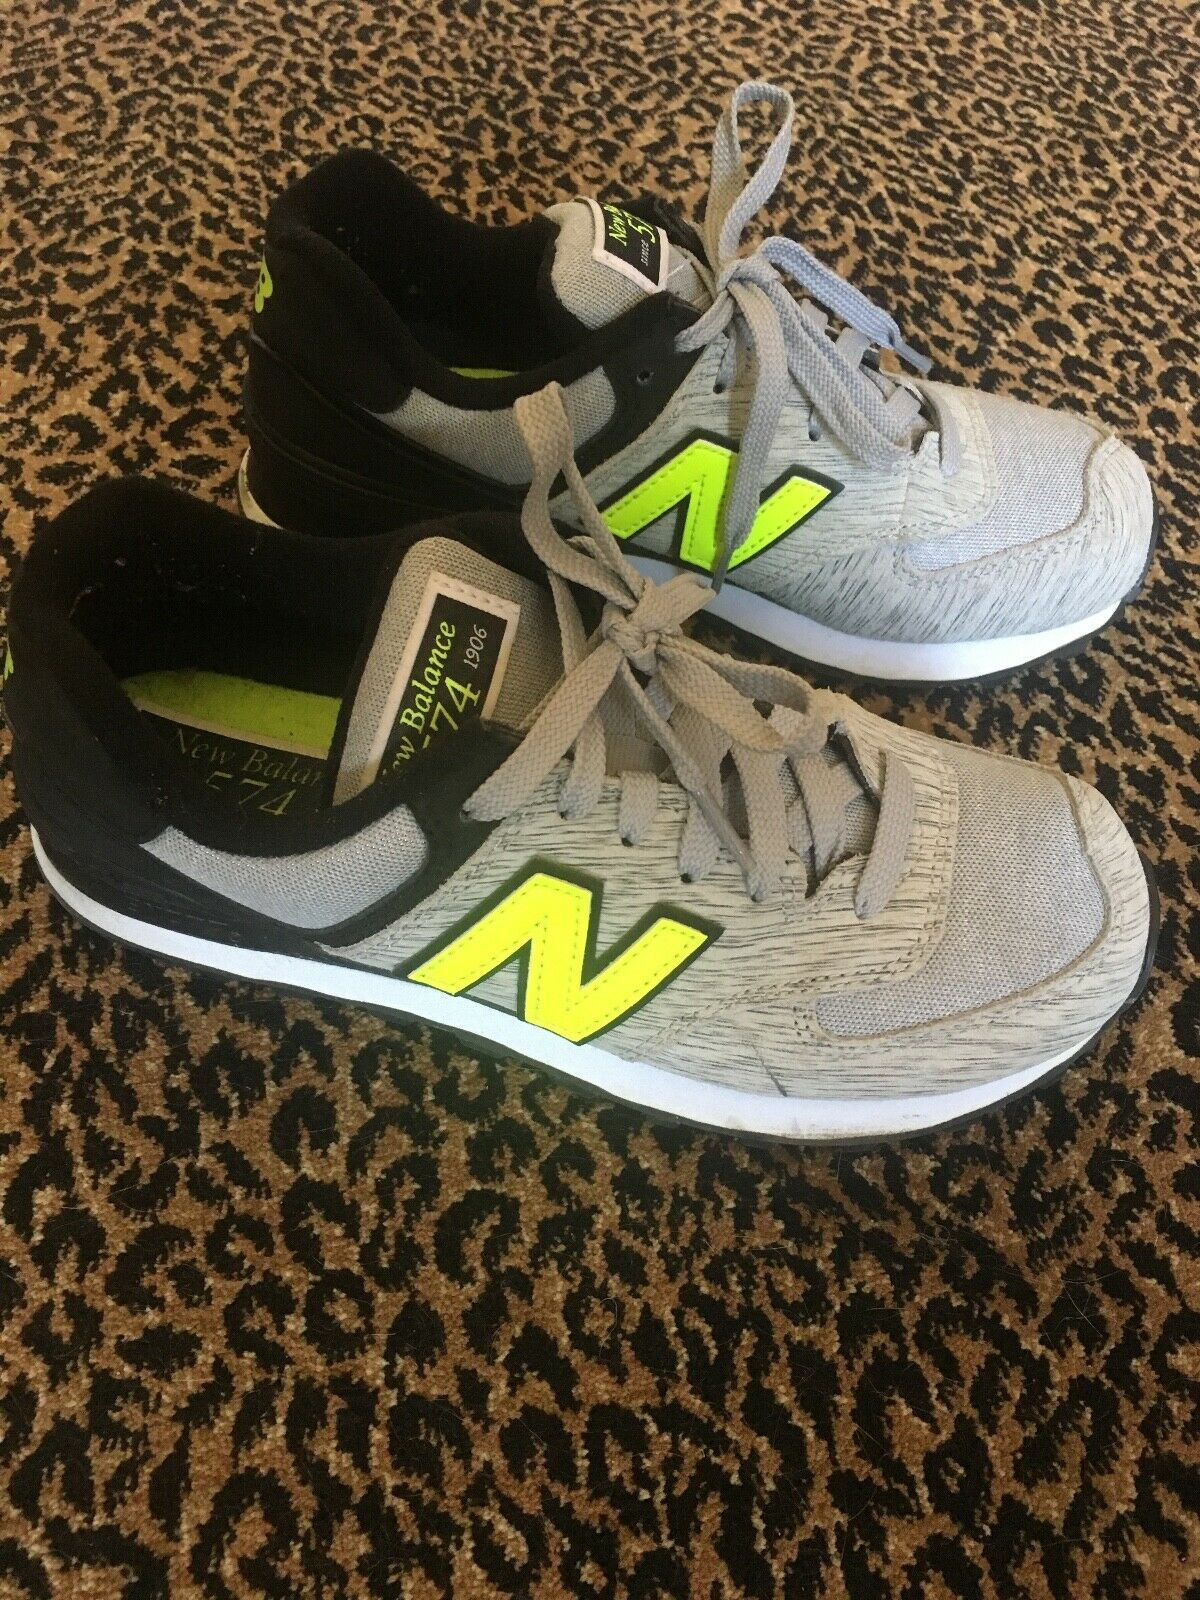 Womens New Balance Sneakers Excellent Condition Size 7.5  7 1 2